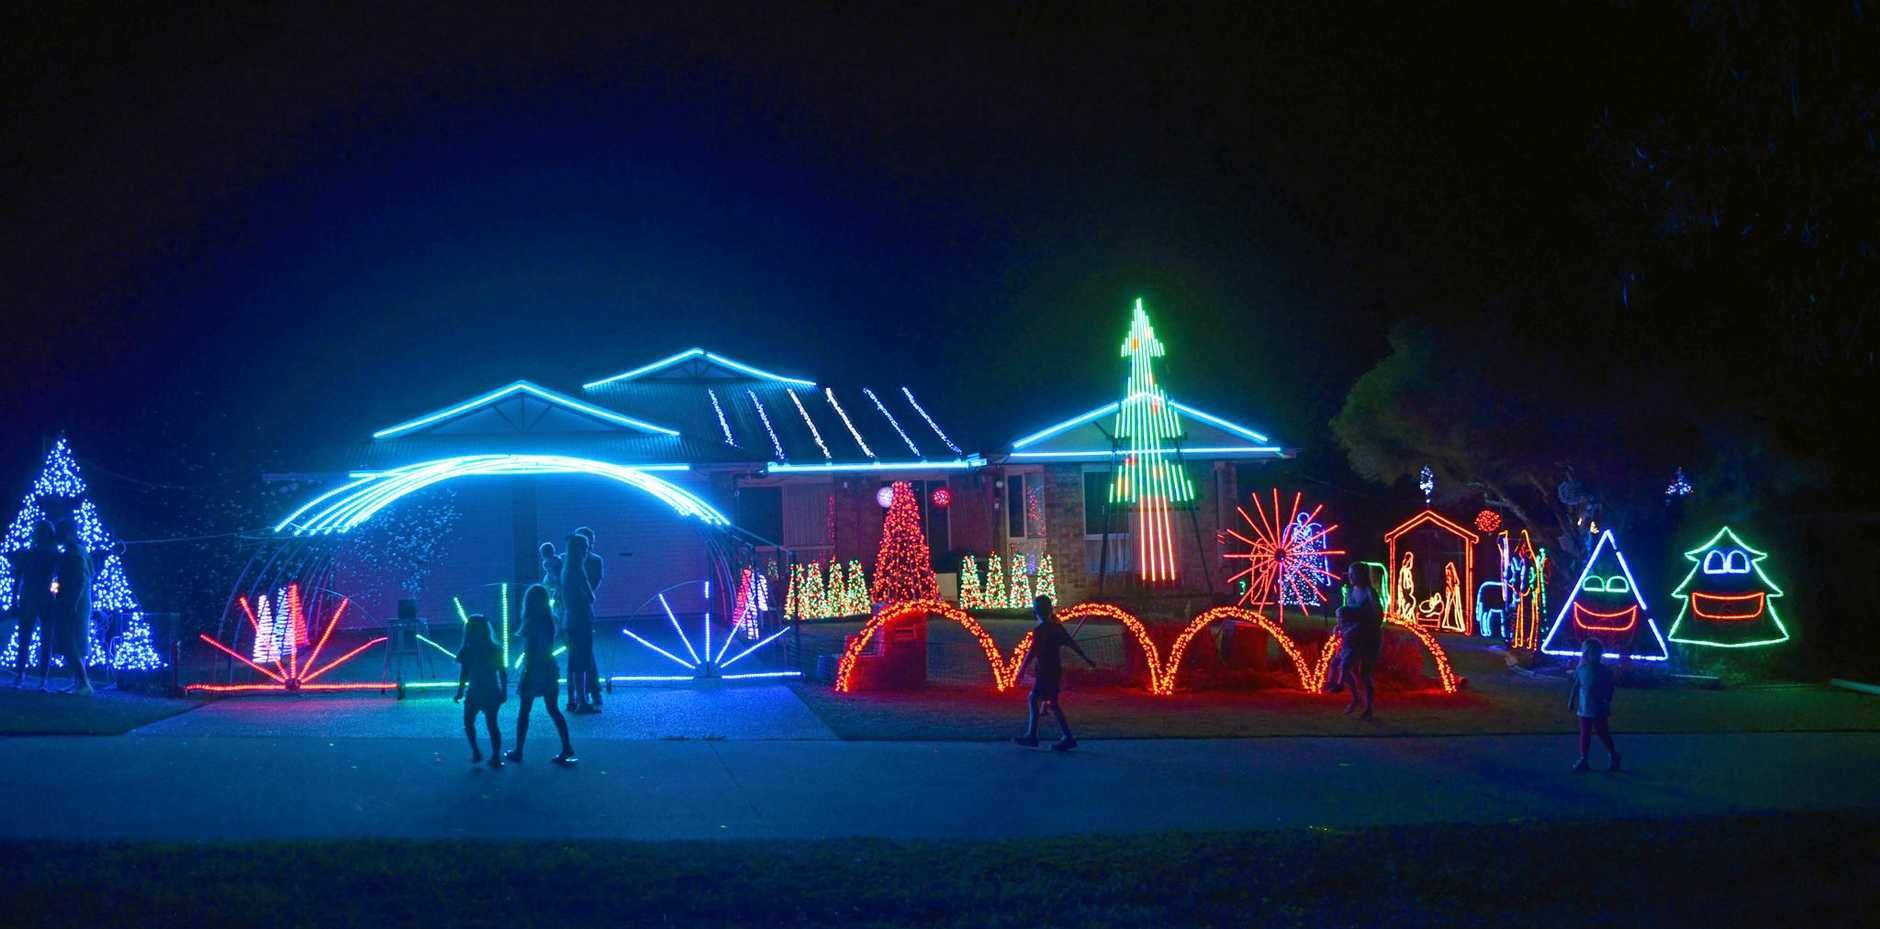 123 Bisley St: Park your car and tune into 97.9 FM and enjoy the Christmas light show.